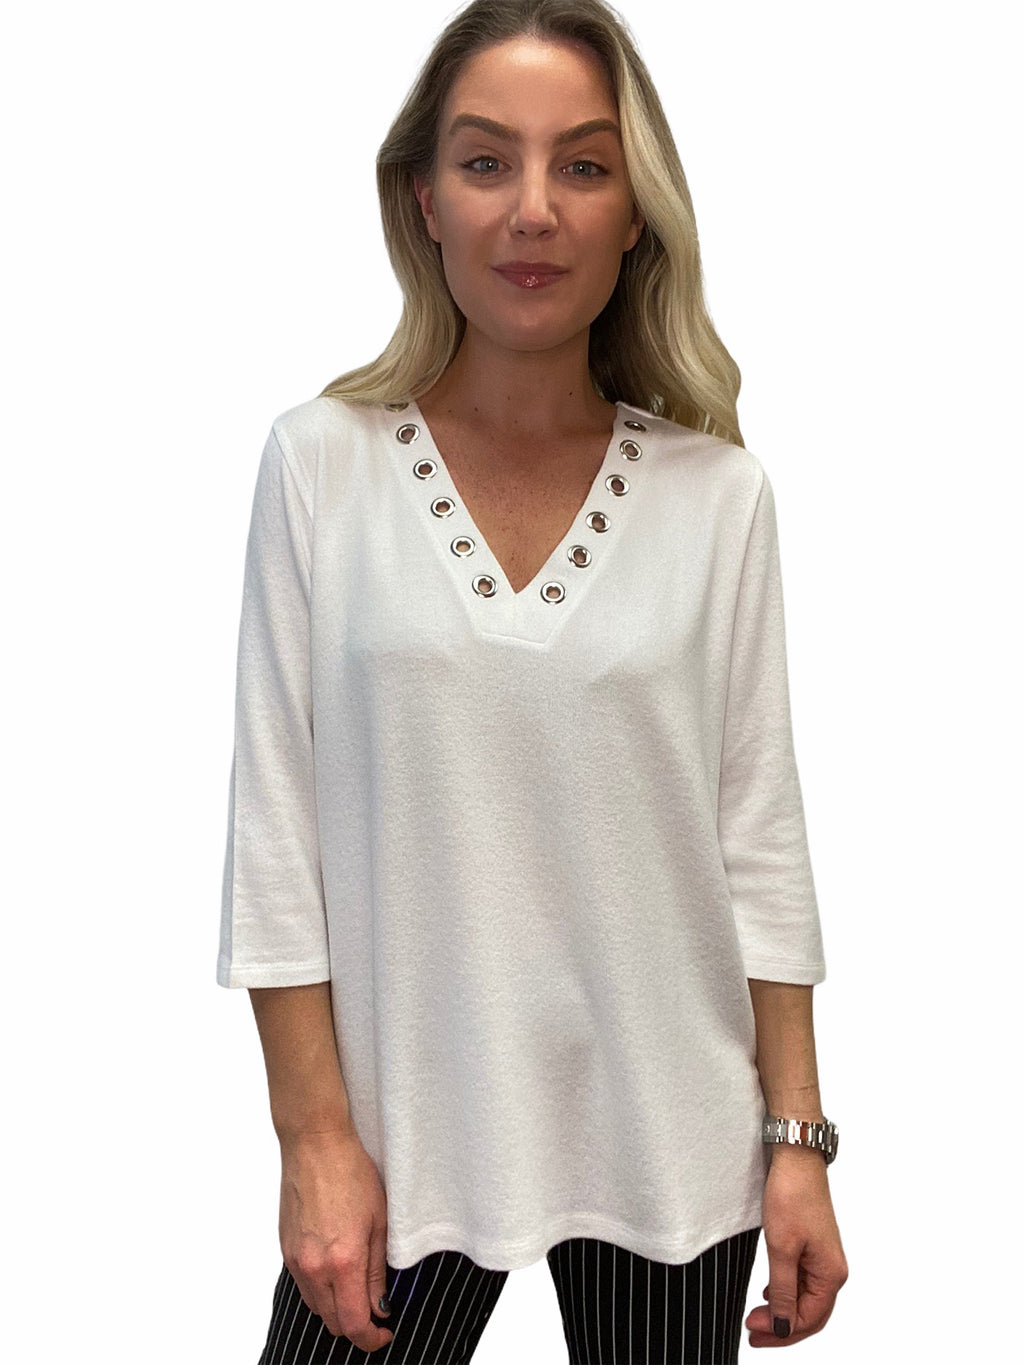 Grommet V-neck Top